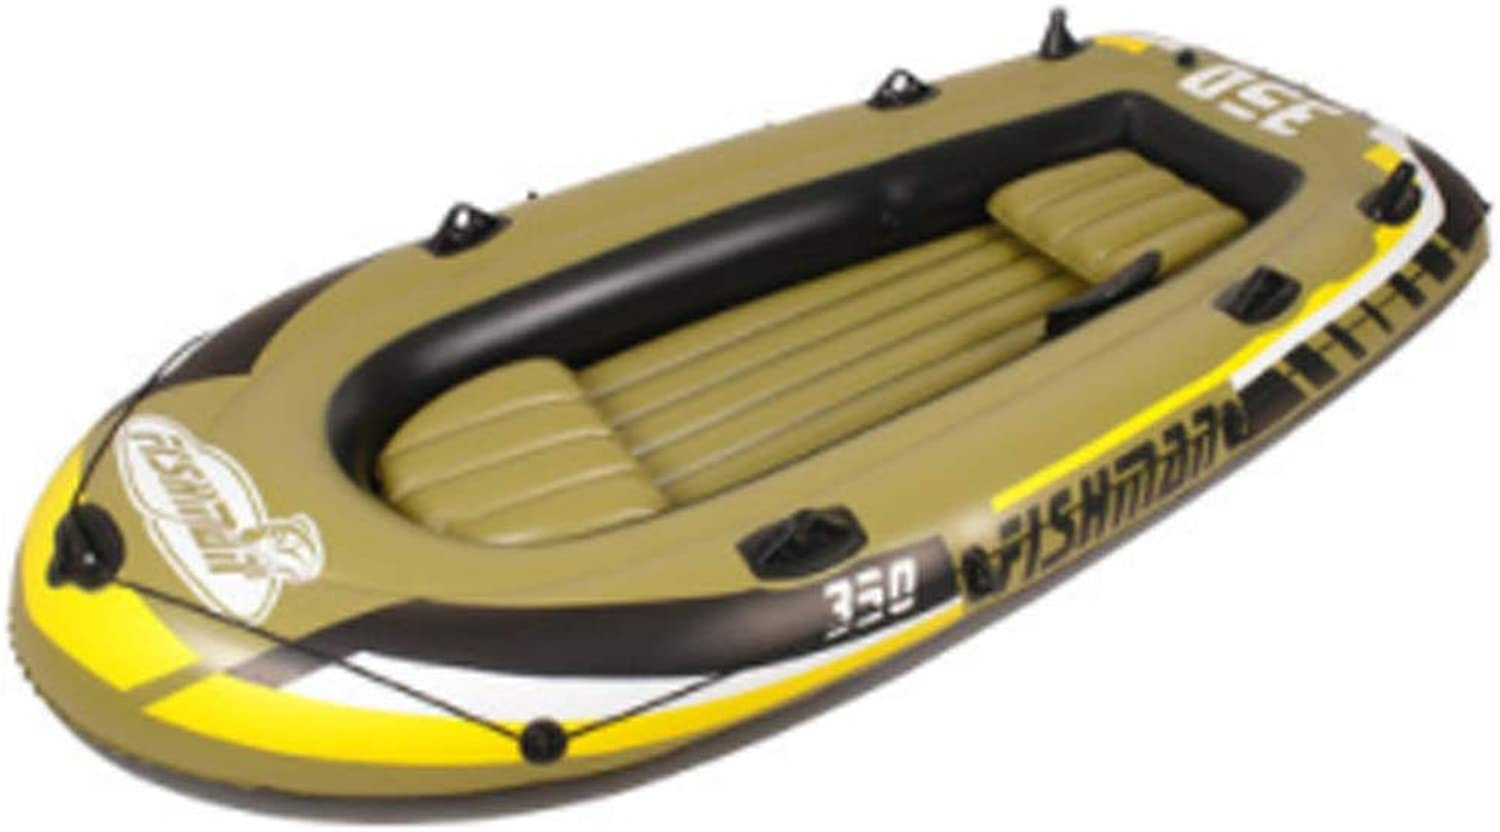 HYYQG 2 3 4 Person Kayak Rubber Boat Thick WearResistant Inflatable Boat Double Fishing Boat Extra Thick Hovercraft Assault Boat